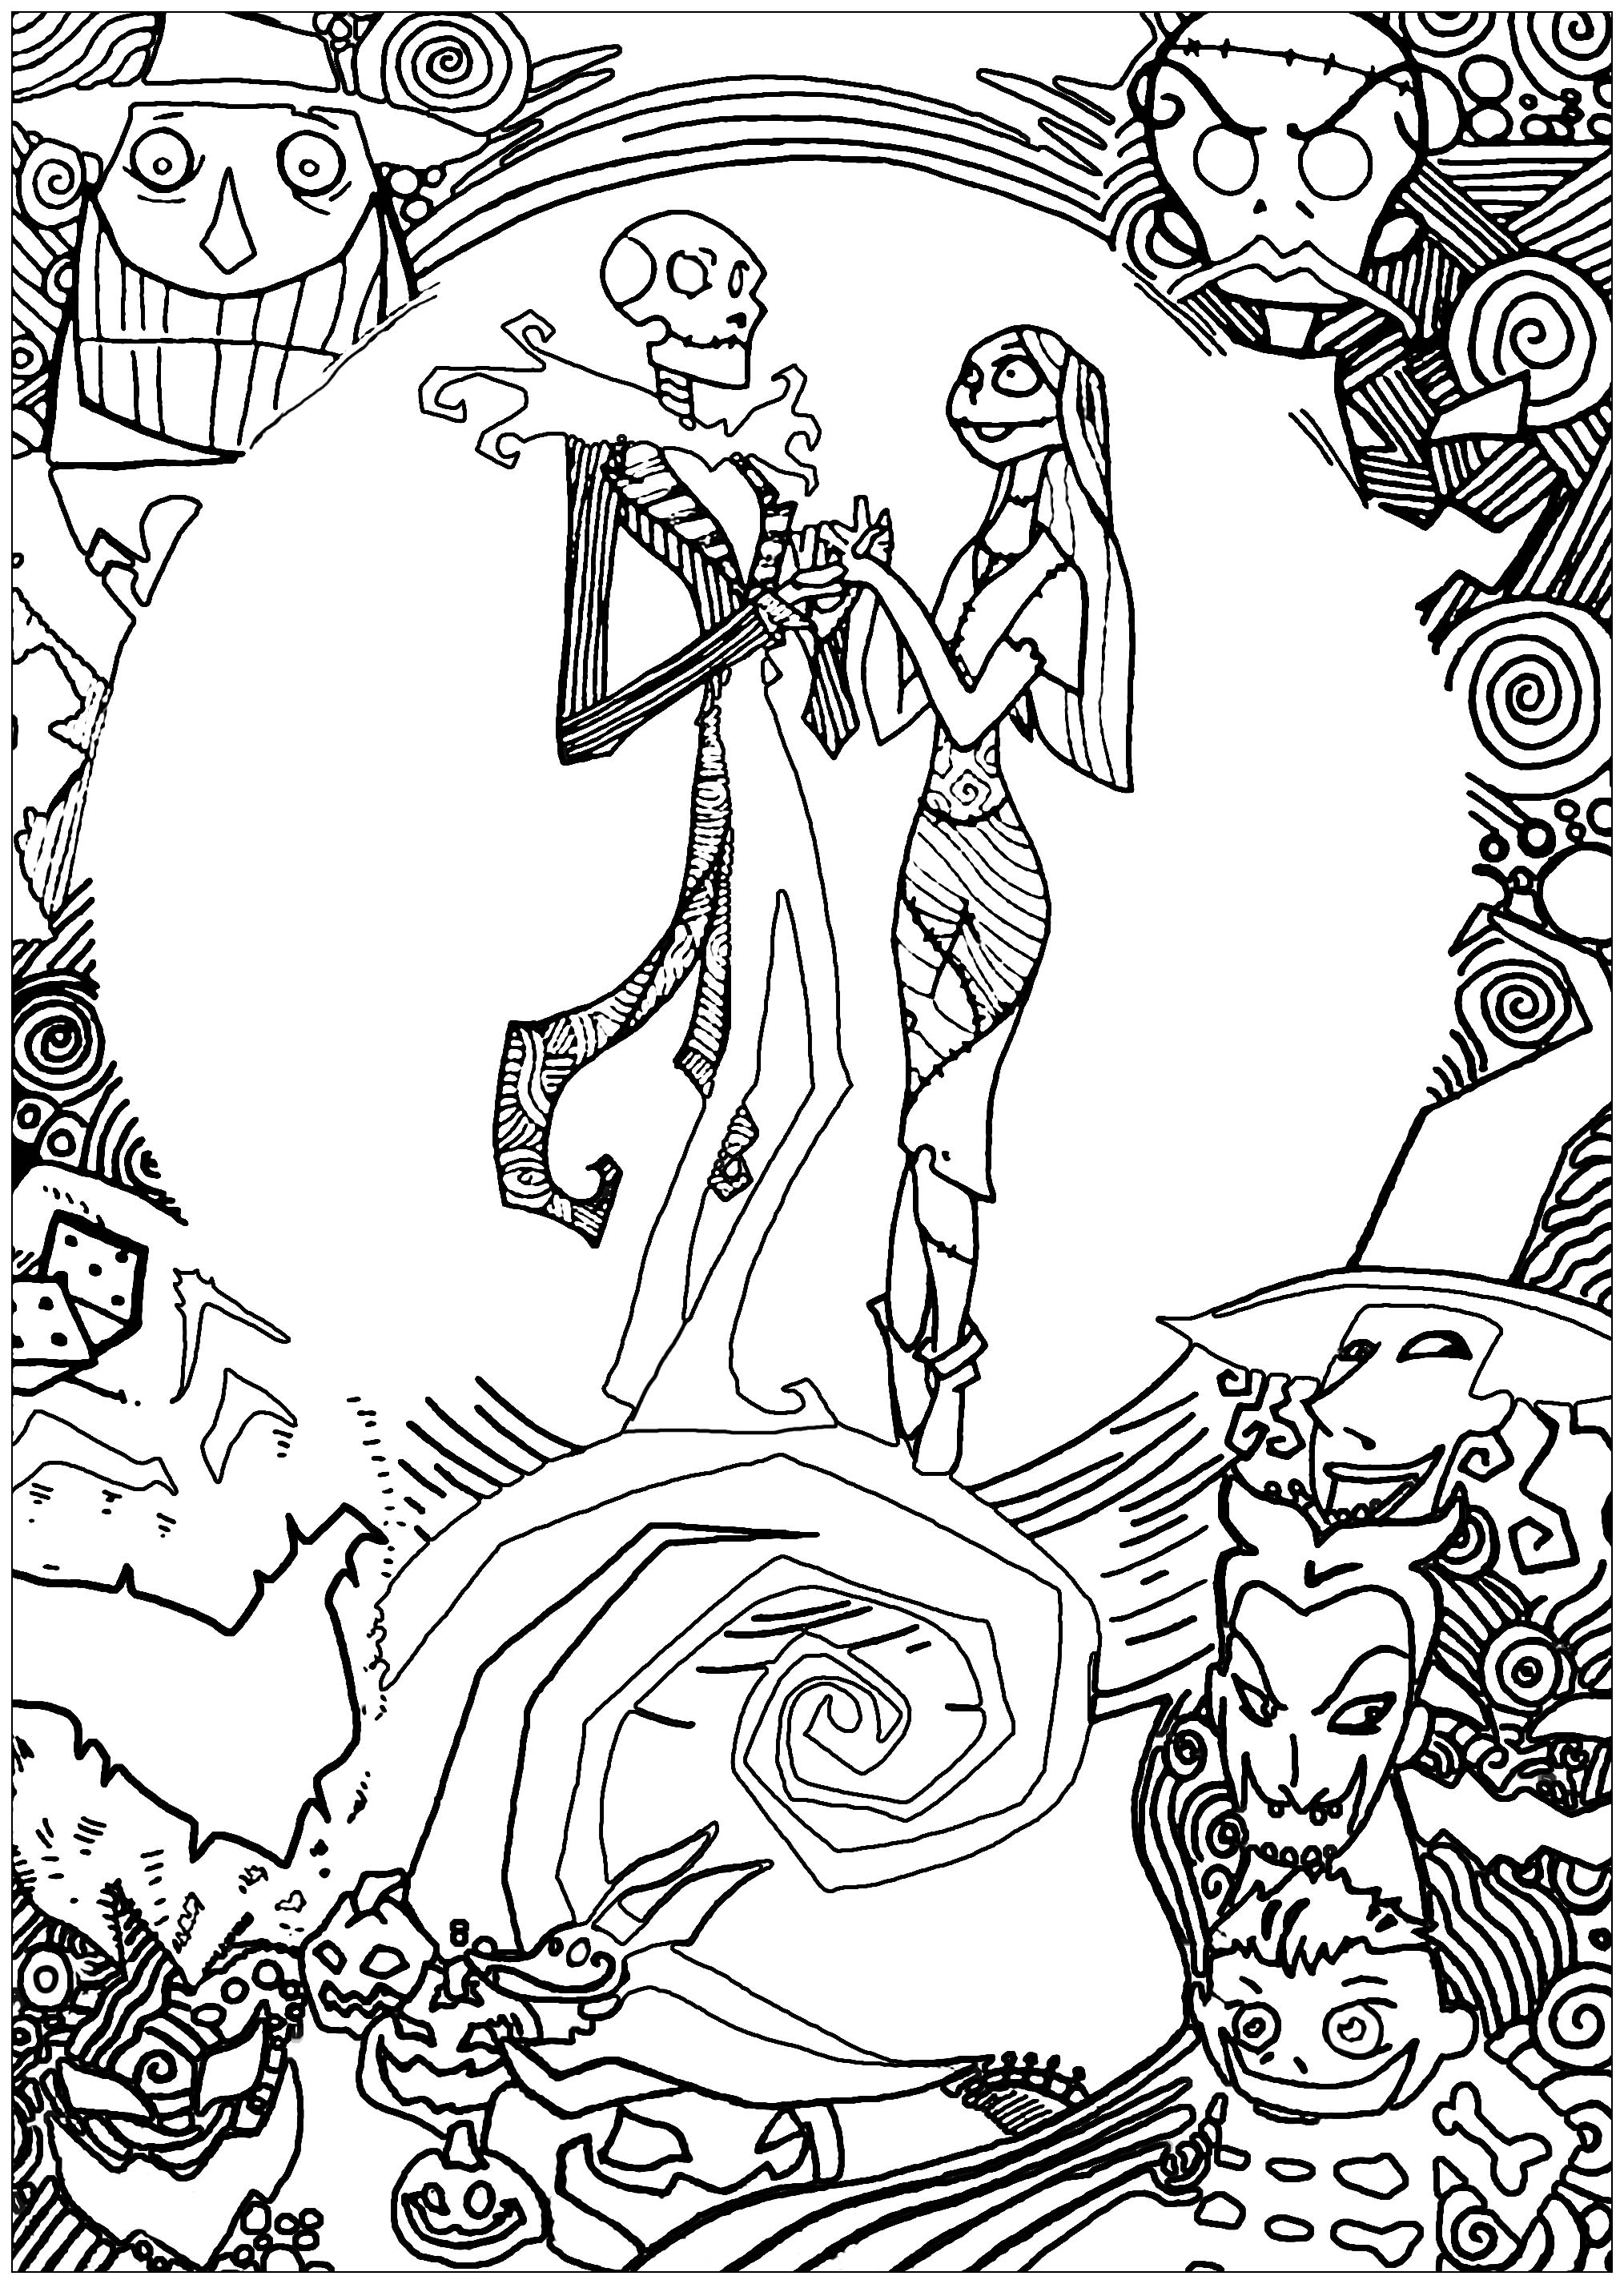 Nightmare Before Christmas Coloring Pages For Adults : nightmare, before, christmas, coloring, pages, adults, Nighmare, Before, Christmas, Sully, Adult, Coloring, Pages